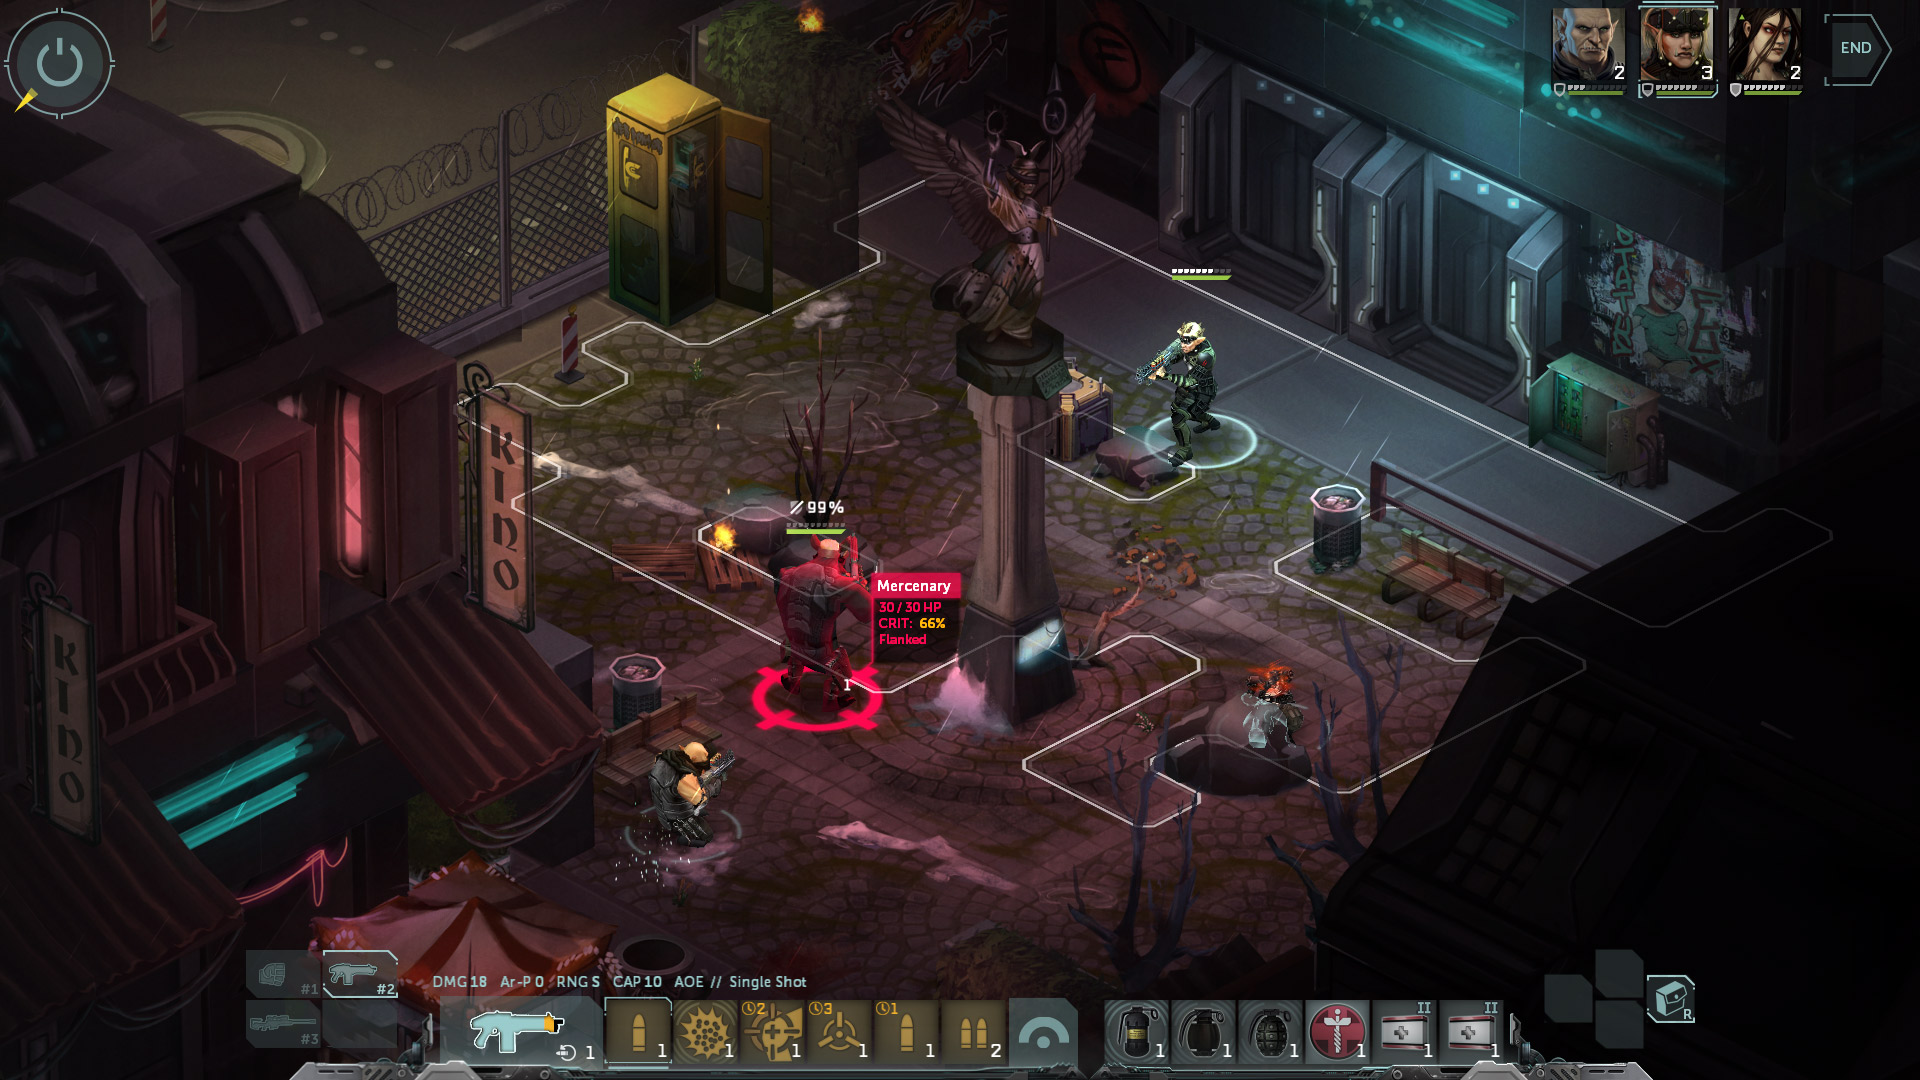 http://harebrained-schemes.com/wp-content/gallery/shadowrun-dragonfall-screens/DFDC-001.jpg